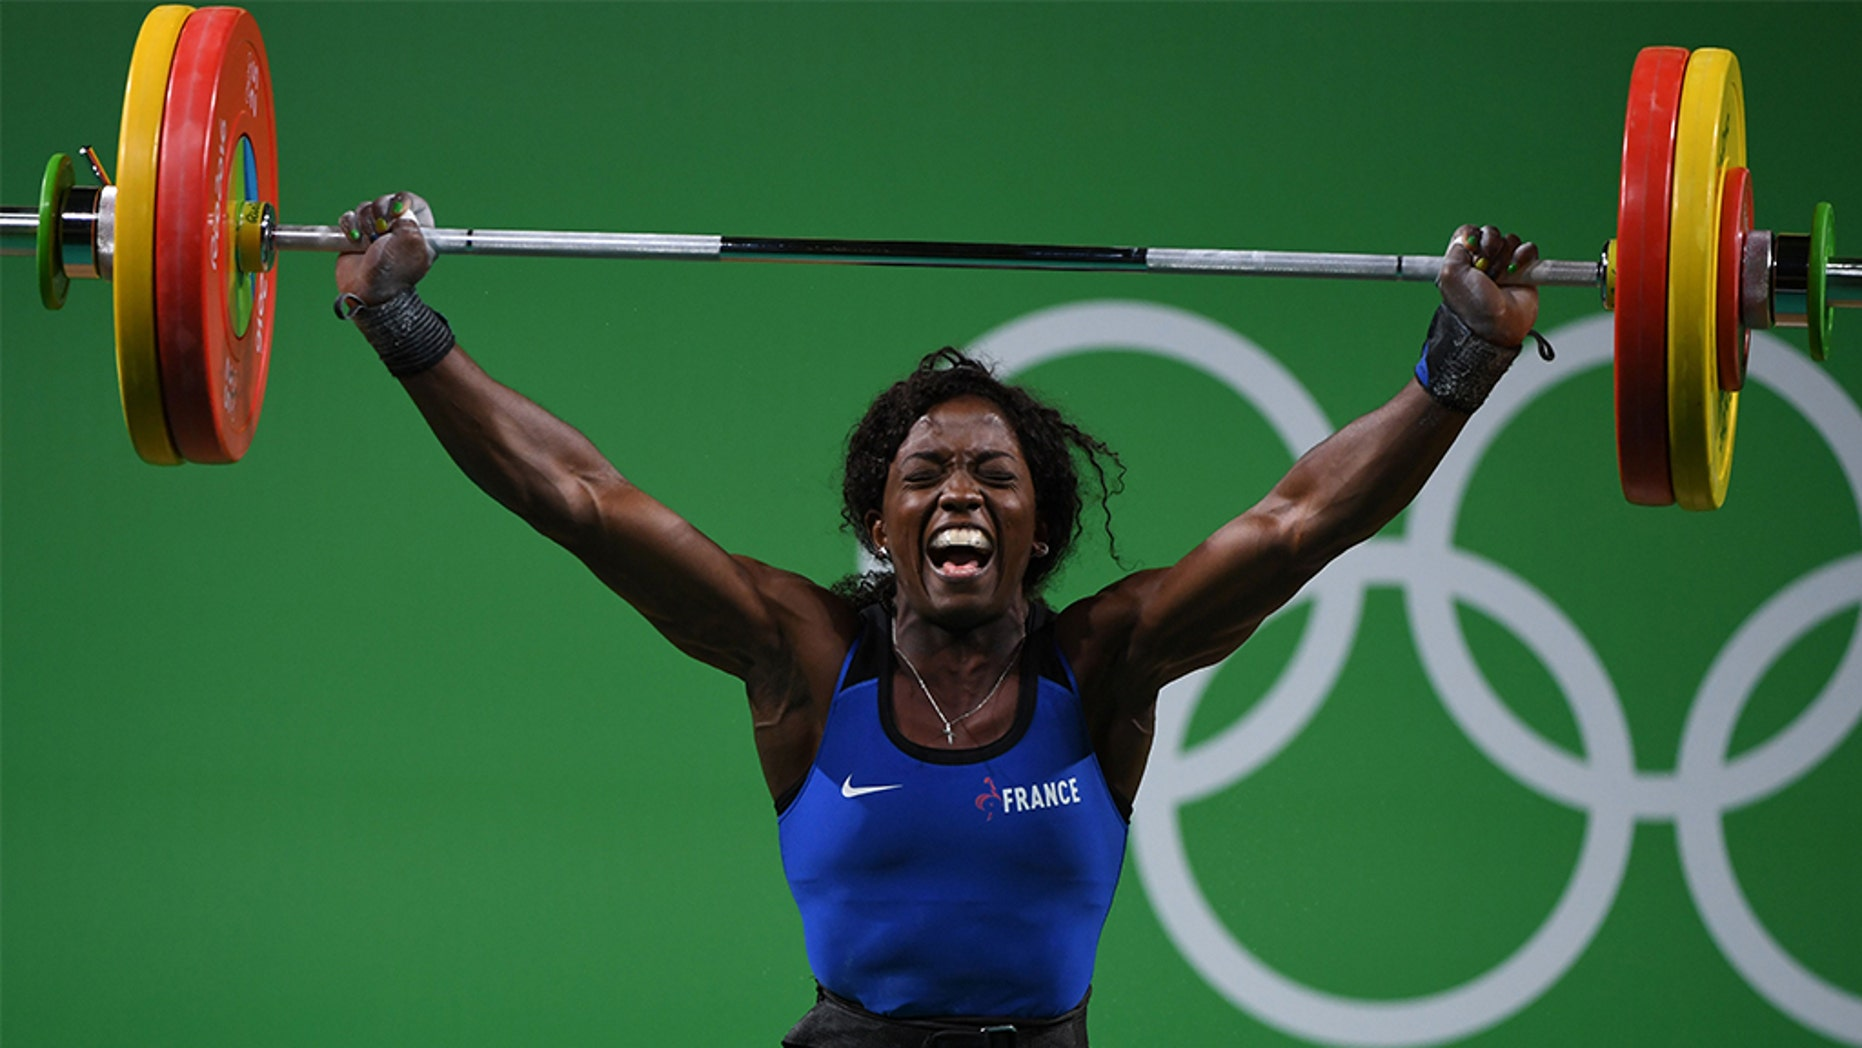 France's Gaelle Verlaine Nayo Ketchanke reacts during a women's weightlifting 75kg eventuality during a Rio 2016 Olympics Games in Rio de Janeiro on Aug 12, 2016.